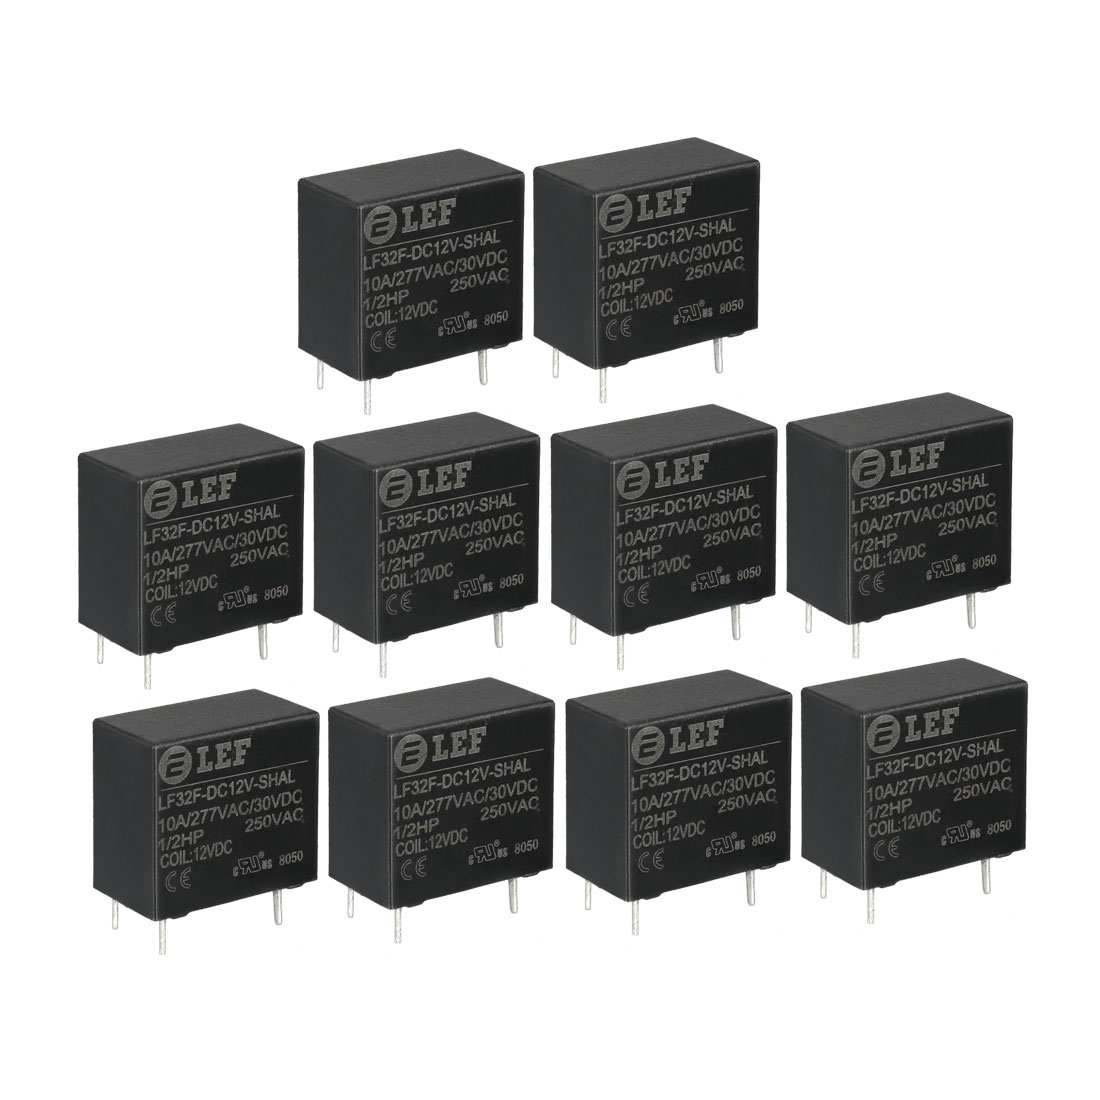 10 Pcs DC 12V Coil SPST NO 4P Power Electromagnetic Relay DIN Rail/PCB Mounted